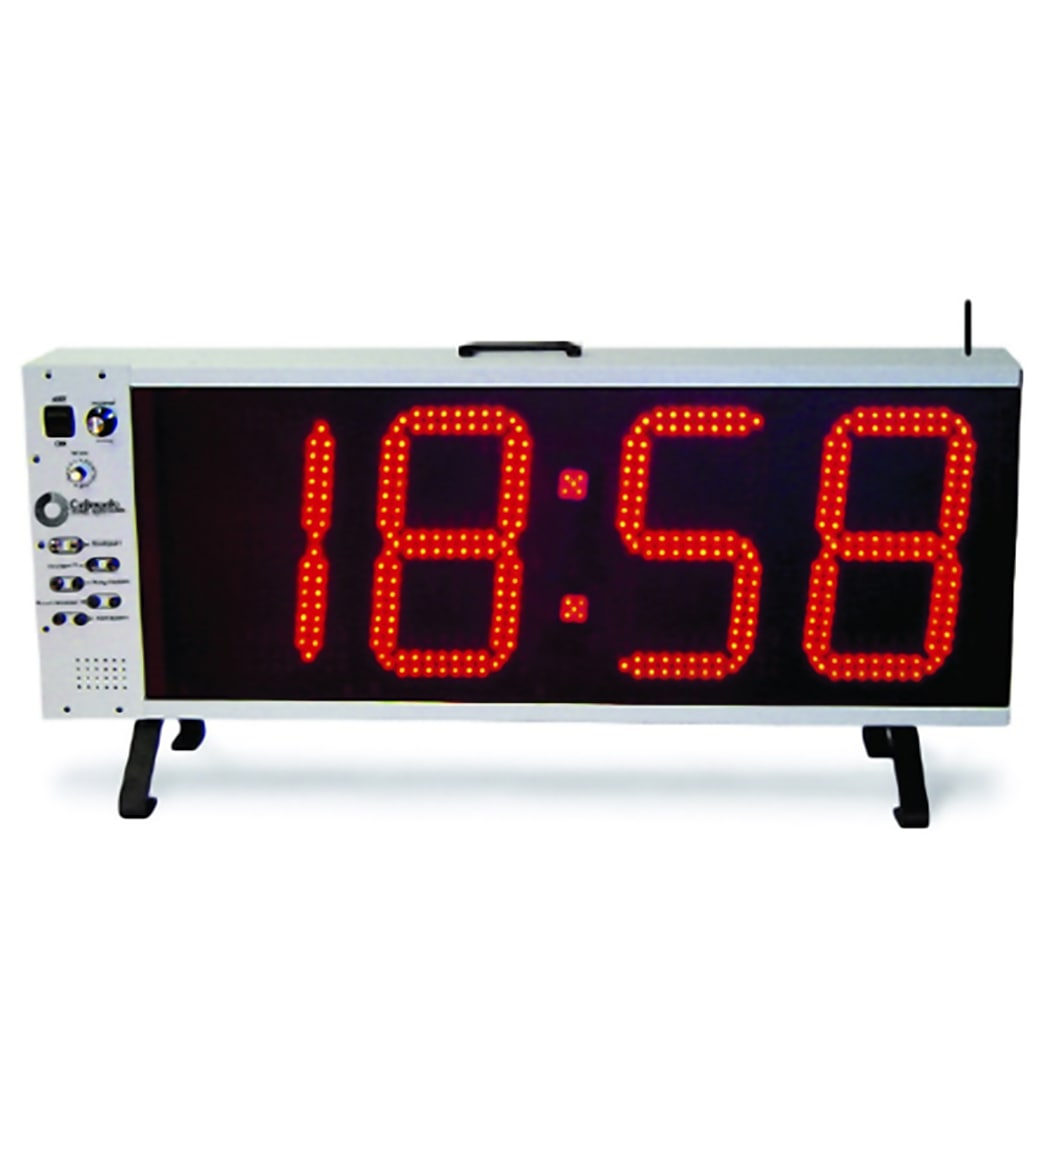 Colorado Time Systems Pace Clock Pro Wireless At